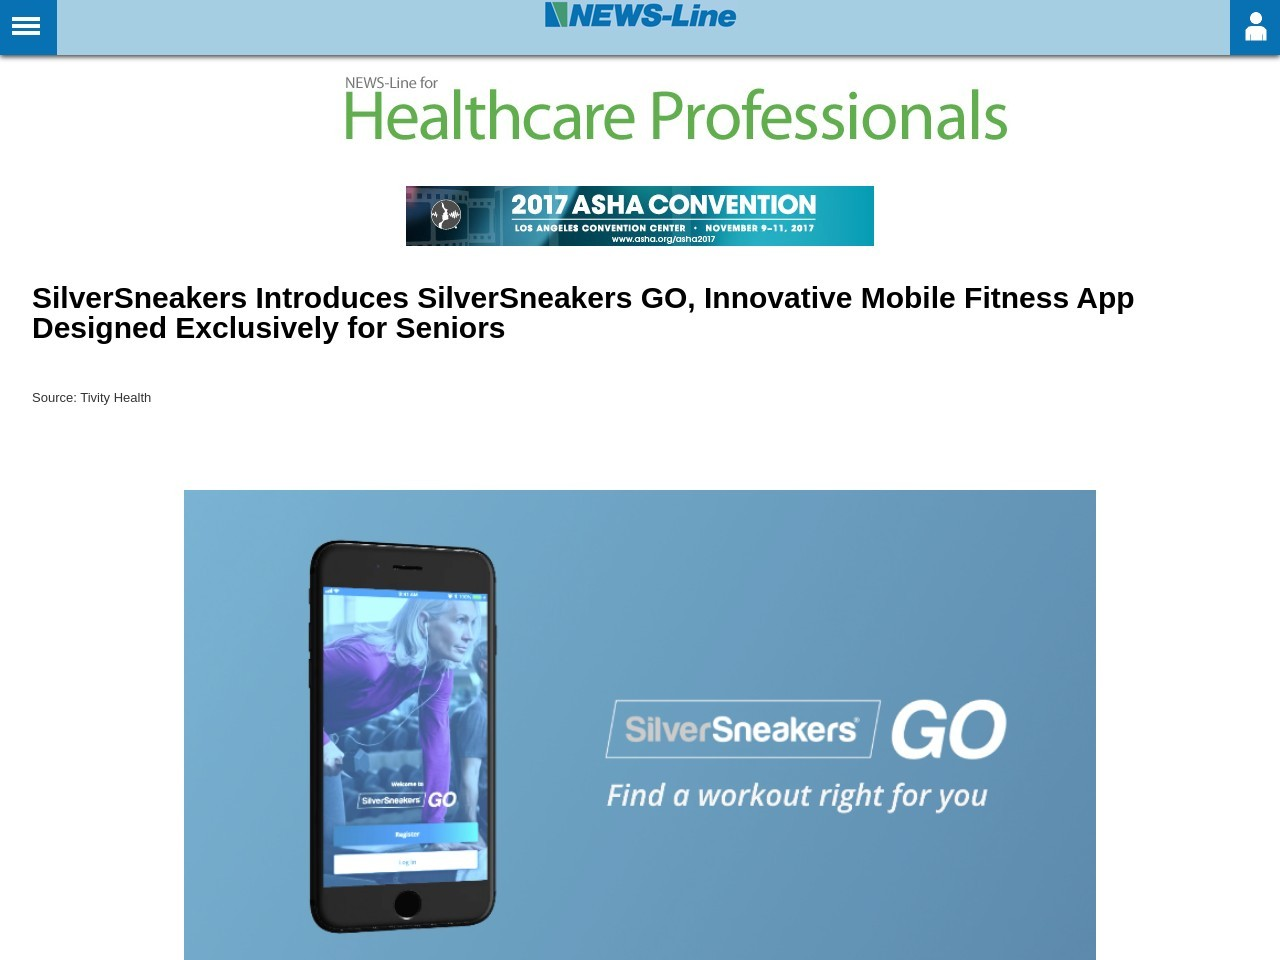 …GO, Innovative Mobile Fitness App Designed Exclusively for…